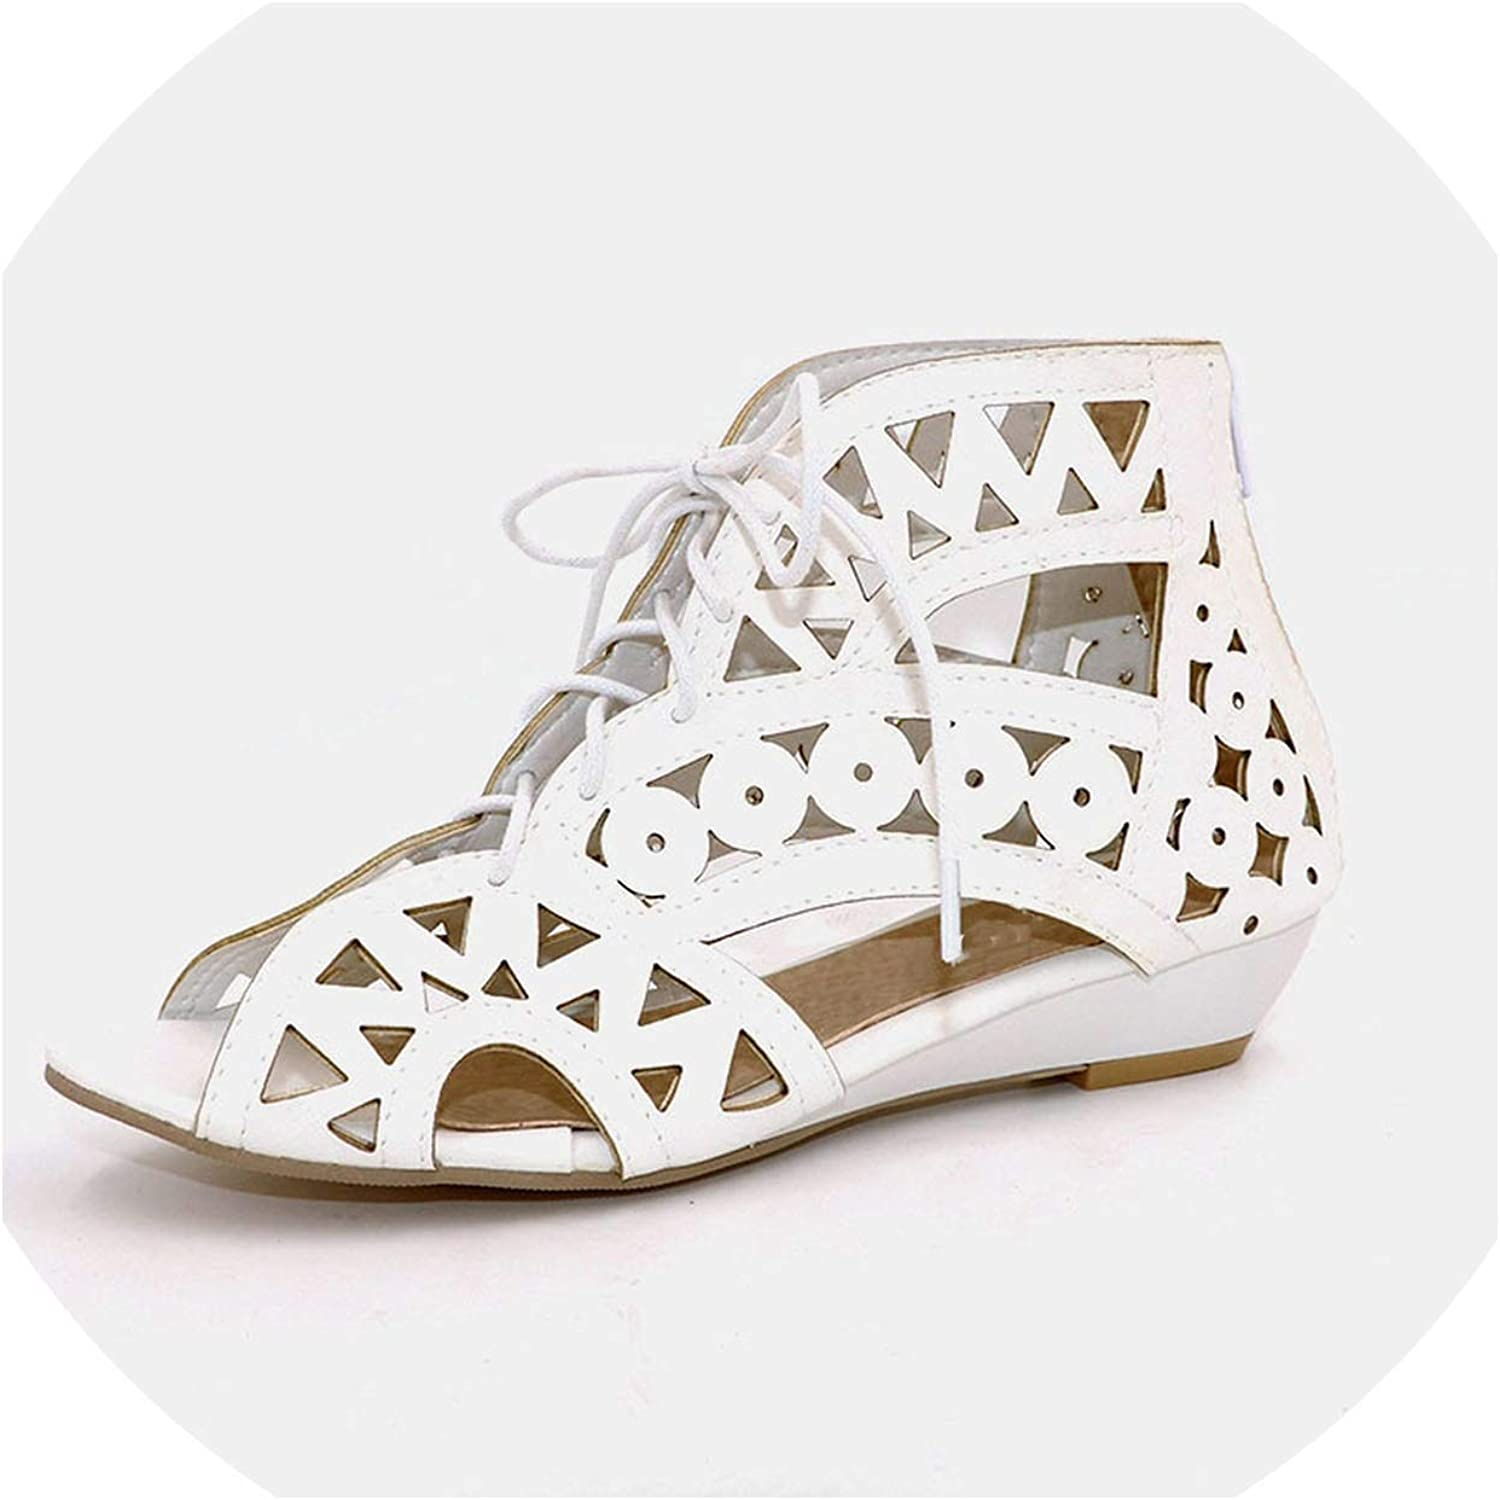 Cutouts Lace Up Women Sandals Open Toe Low Wedges Bohemian Summer shoes Beach shoes Women